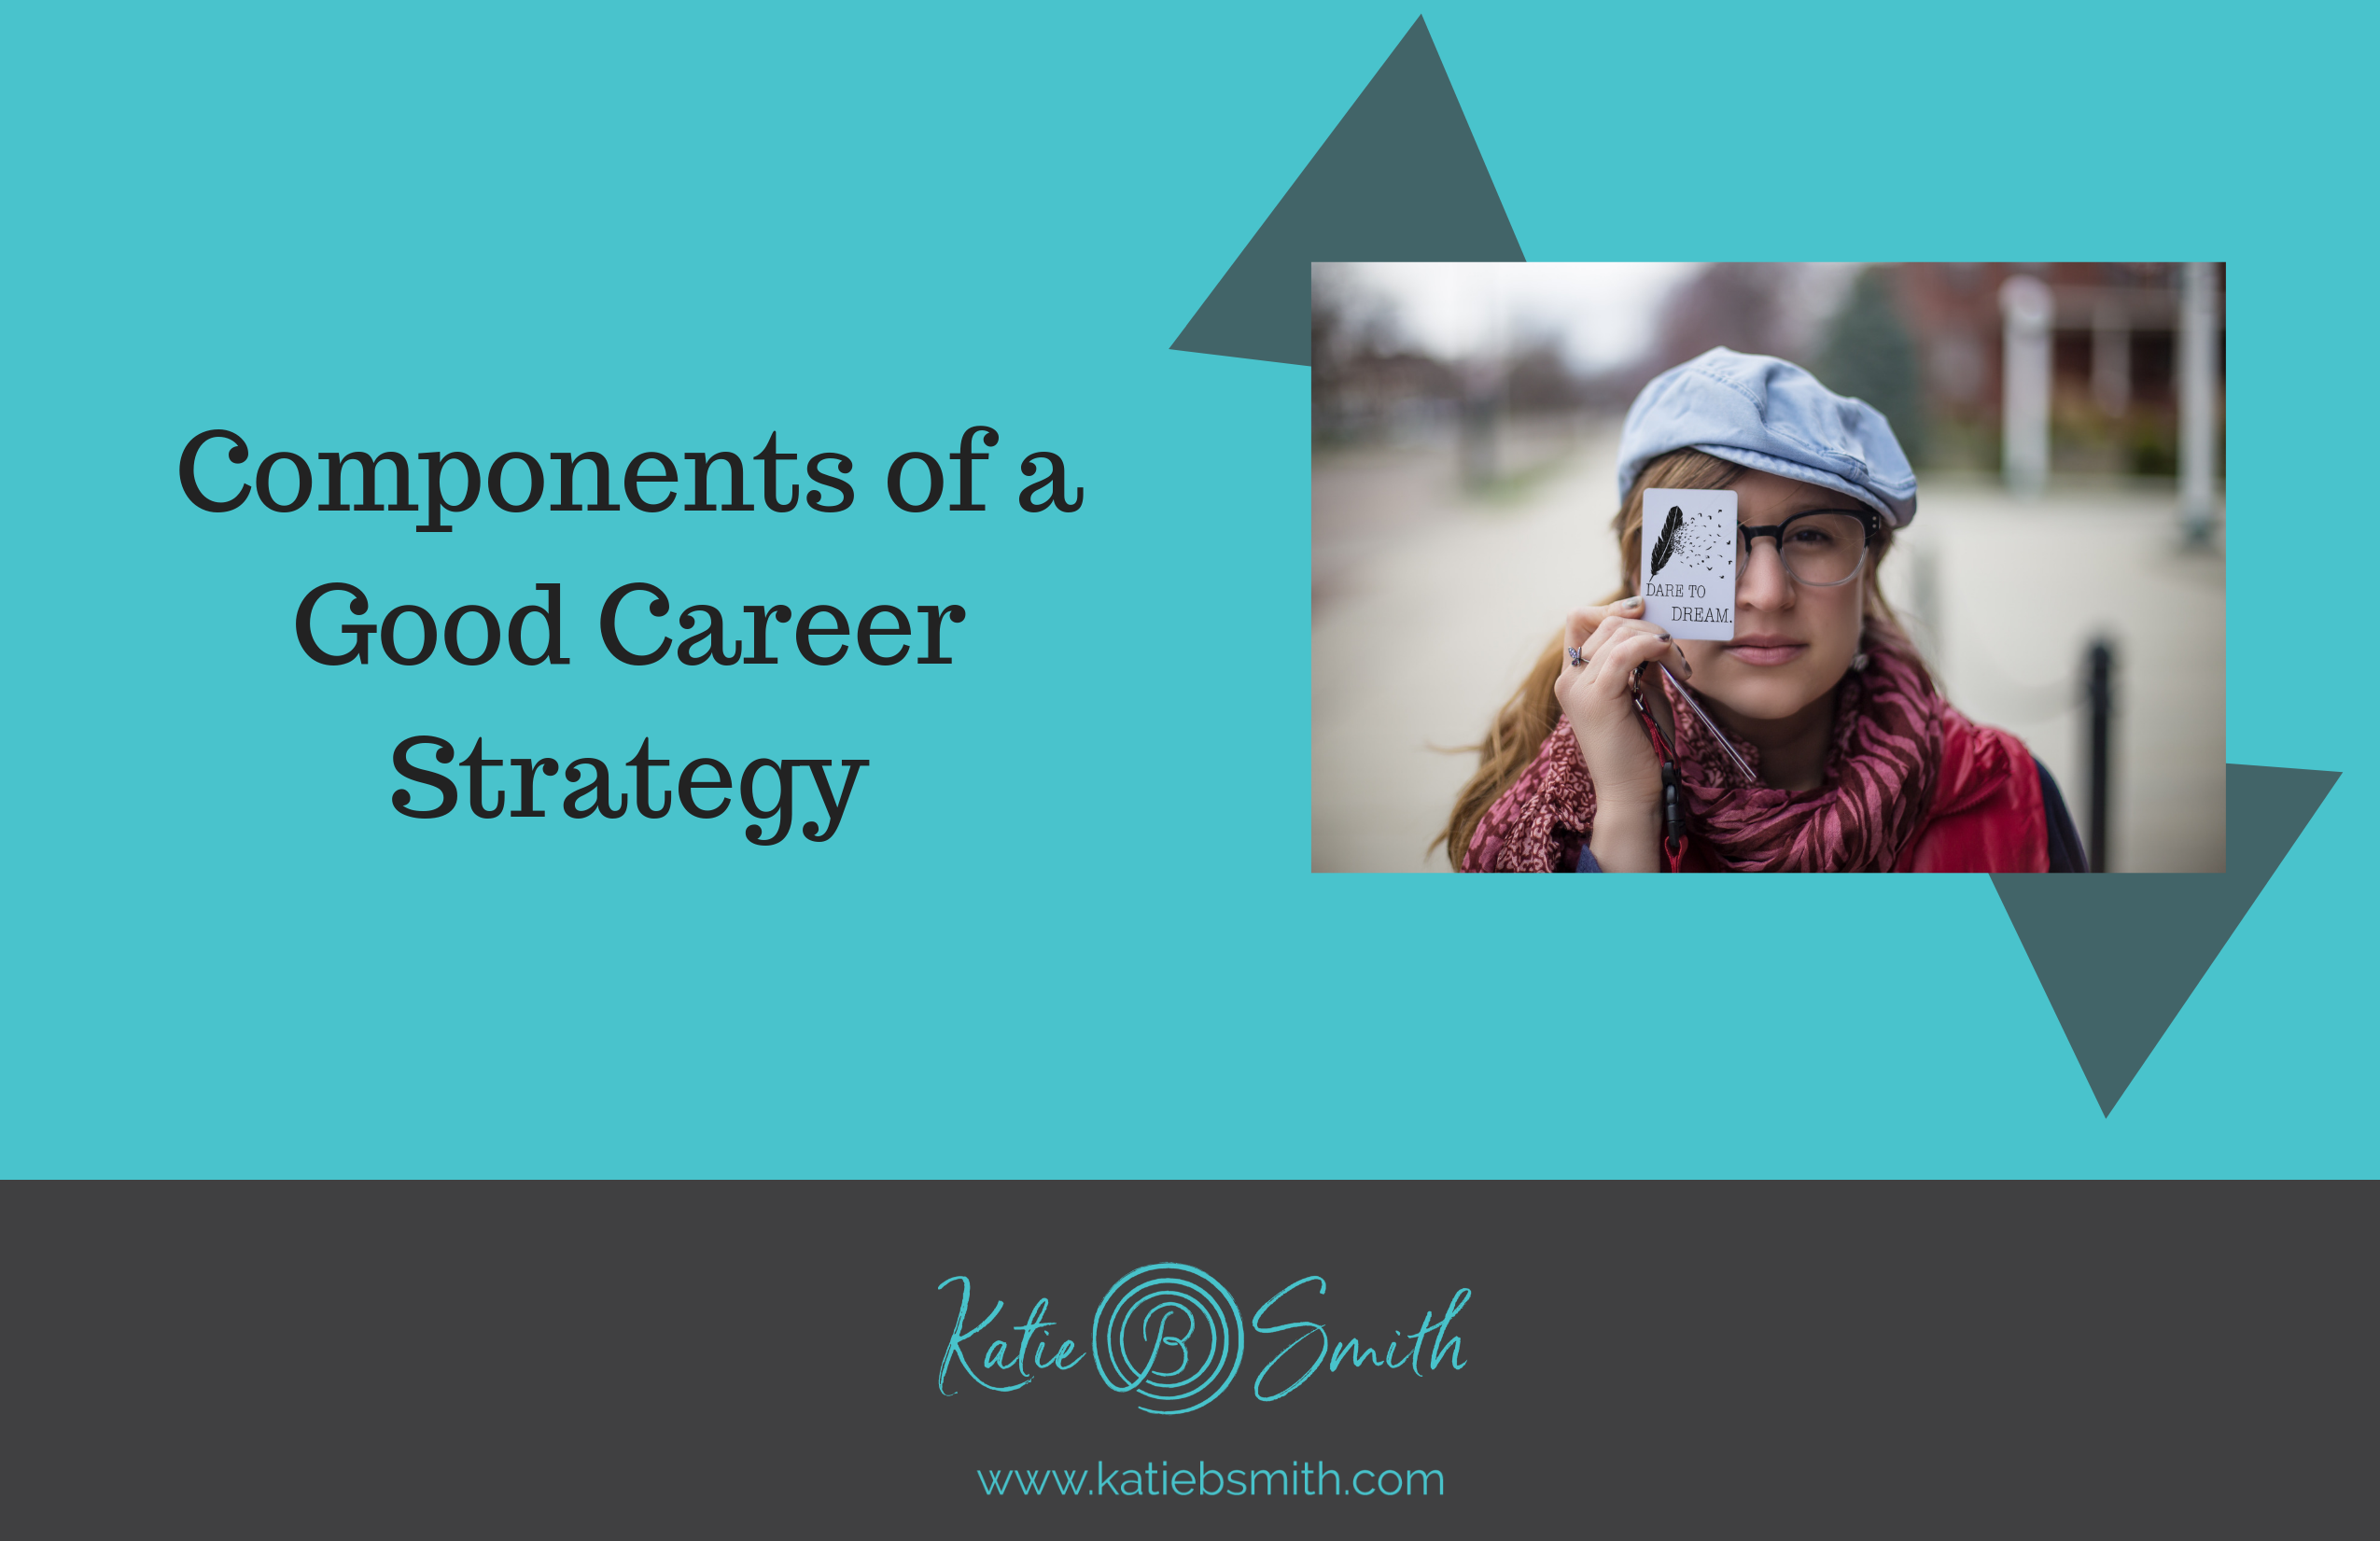 Components of a Good Career Strategy